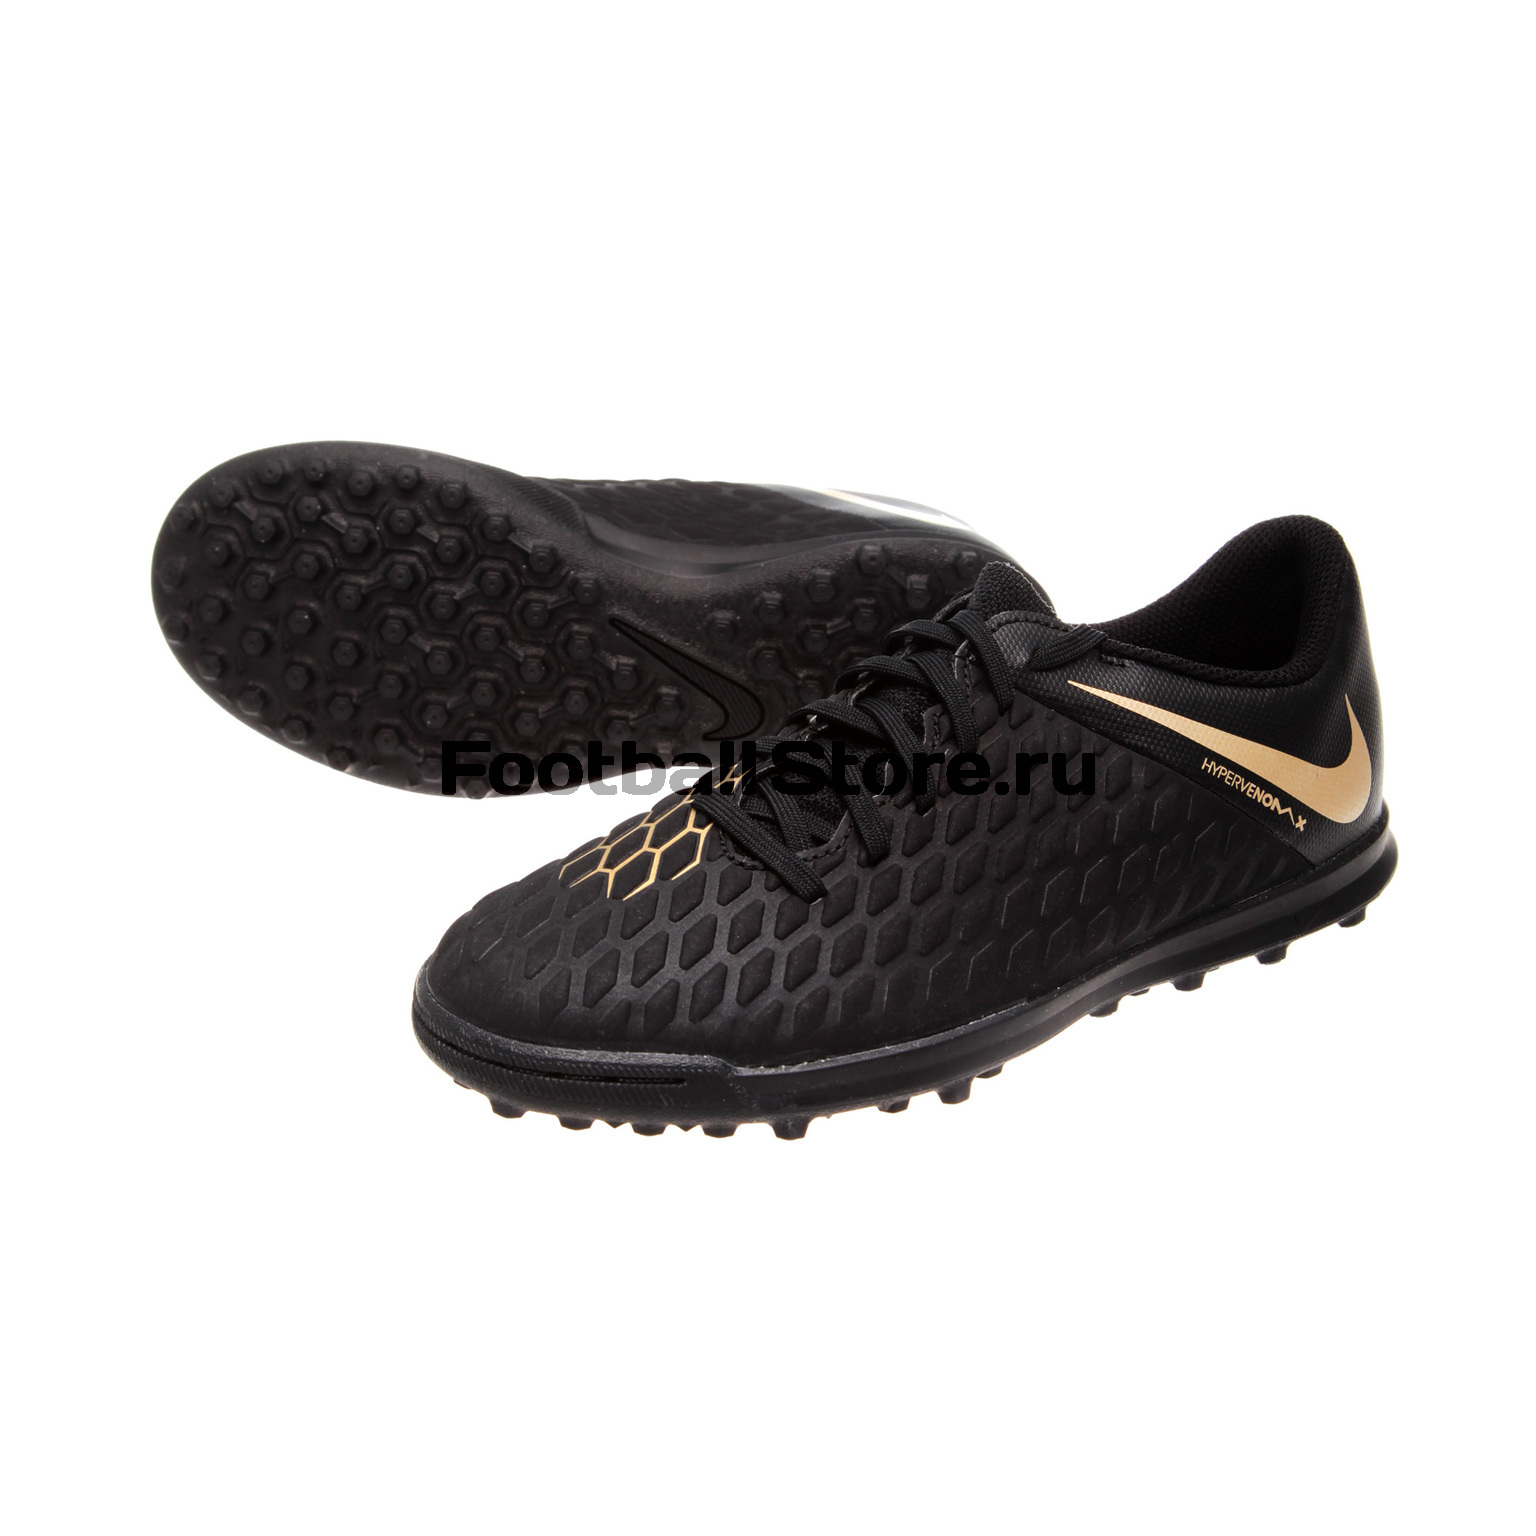 Шиповки Nike Hyprevenom 3 Club JR TF AJ3790-090 детские бутсы nike бутсы nike jr phantom 3 elite df fg ah7292 081